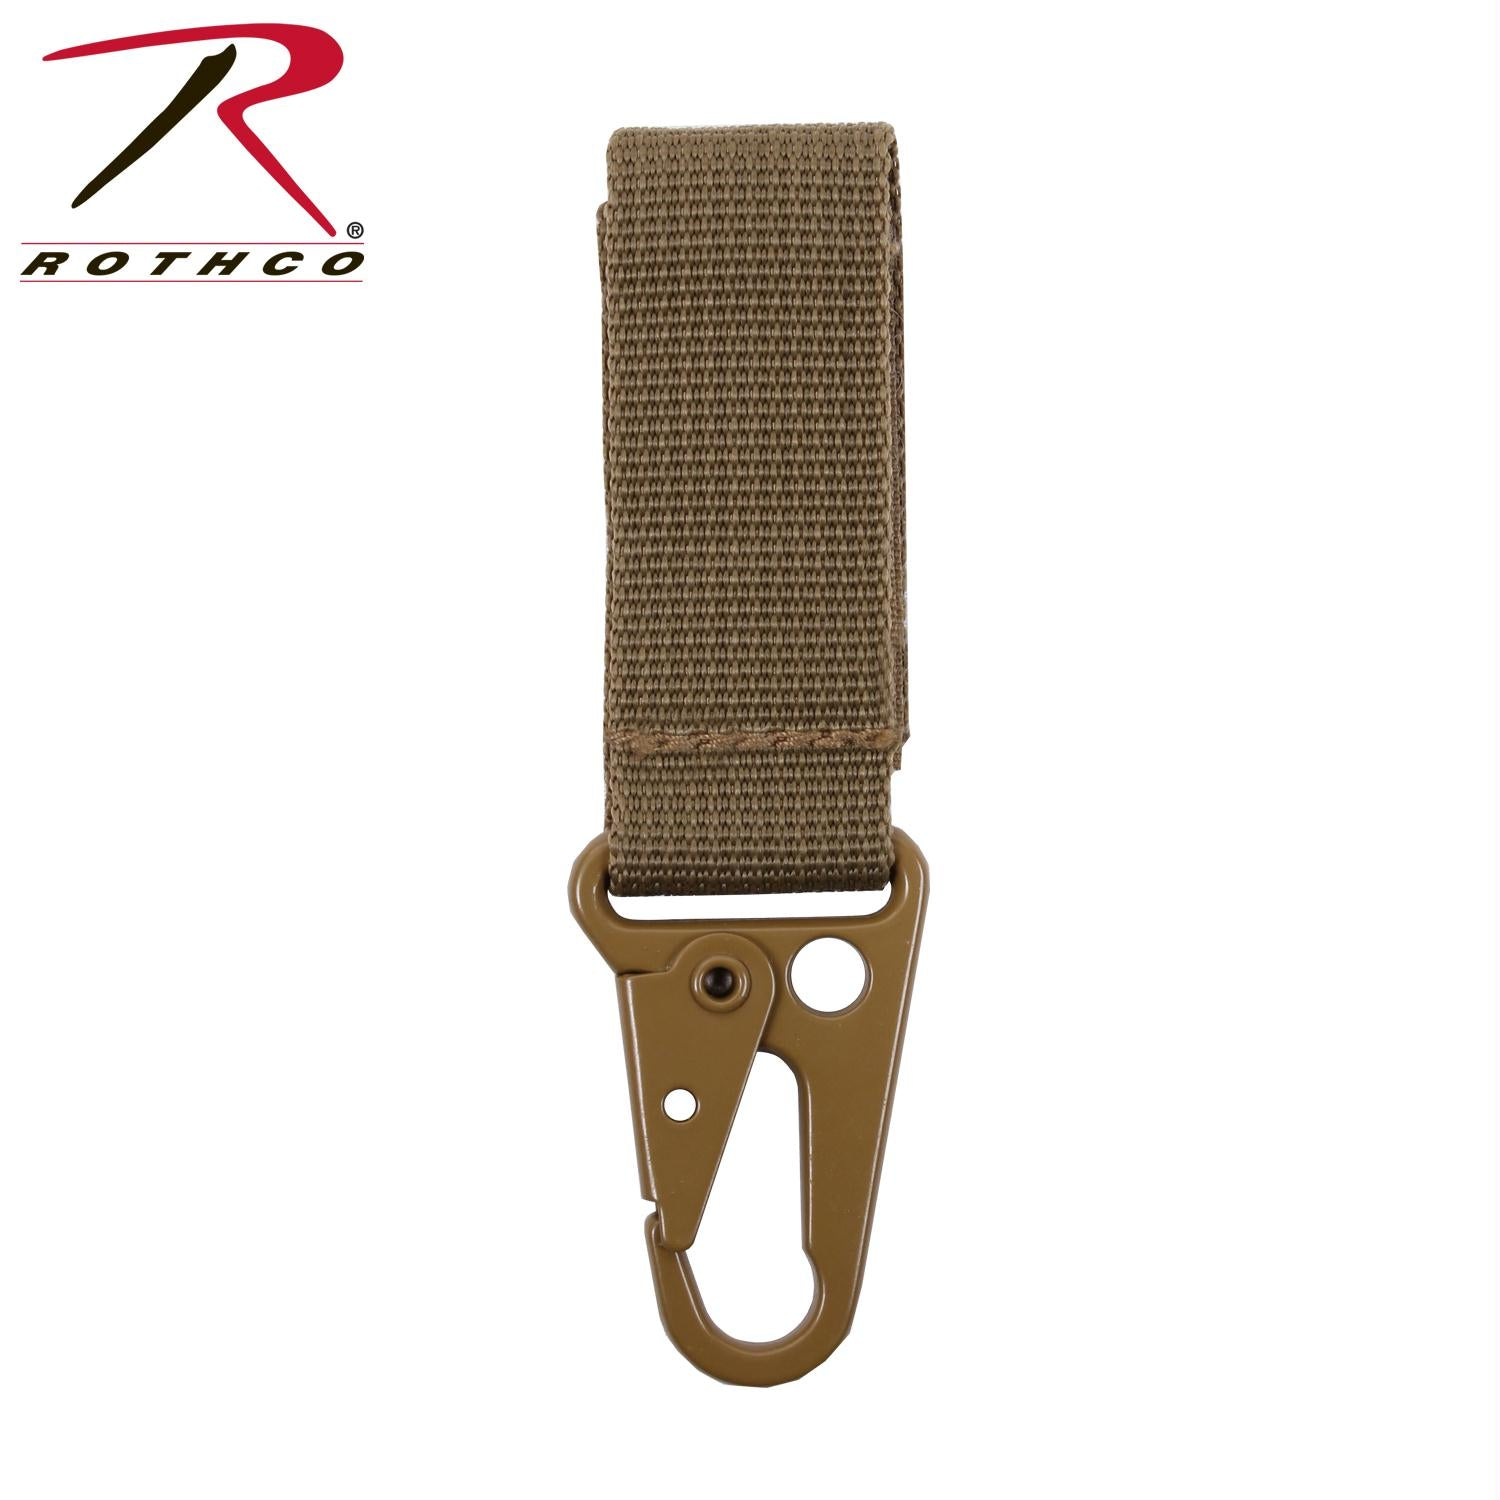 Rothco Tactical Key Clip - Coyote Brown